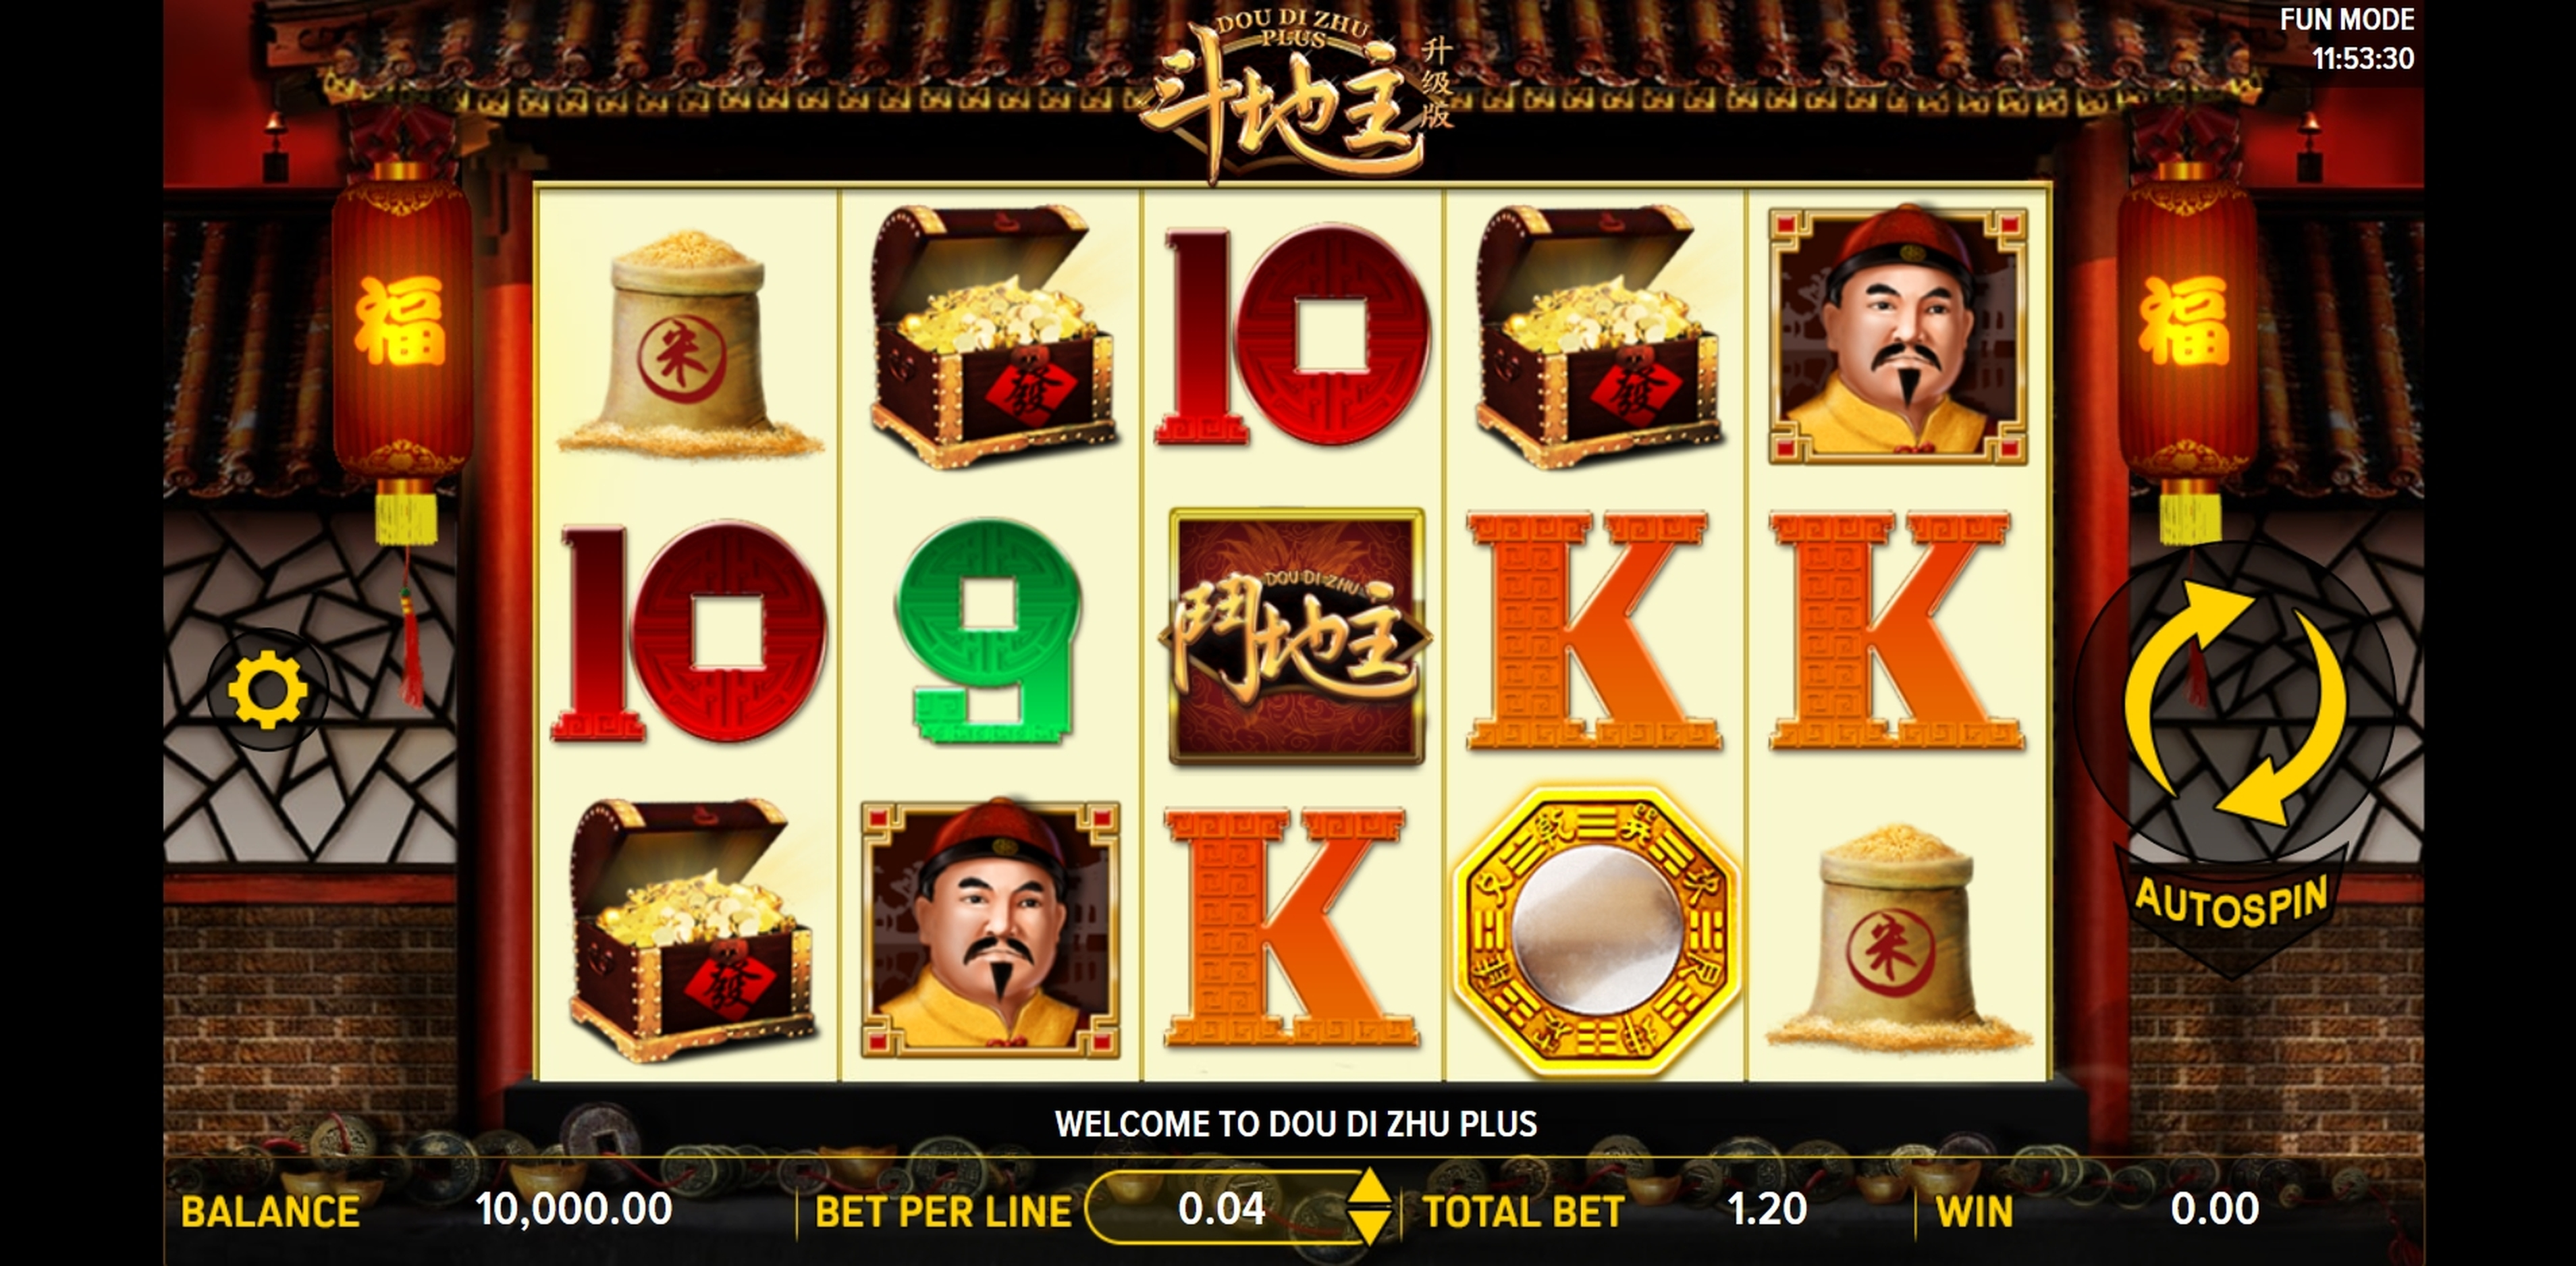 Reels in Dou Di Zhu Plus Slot Game by Aspect Gaming